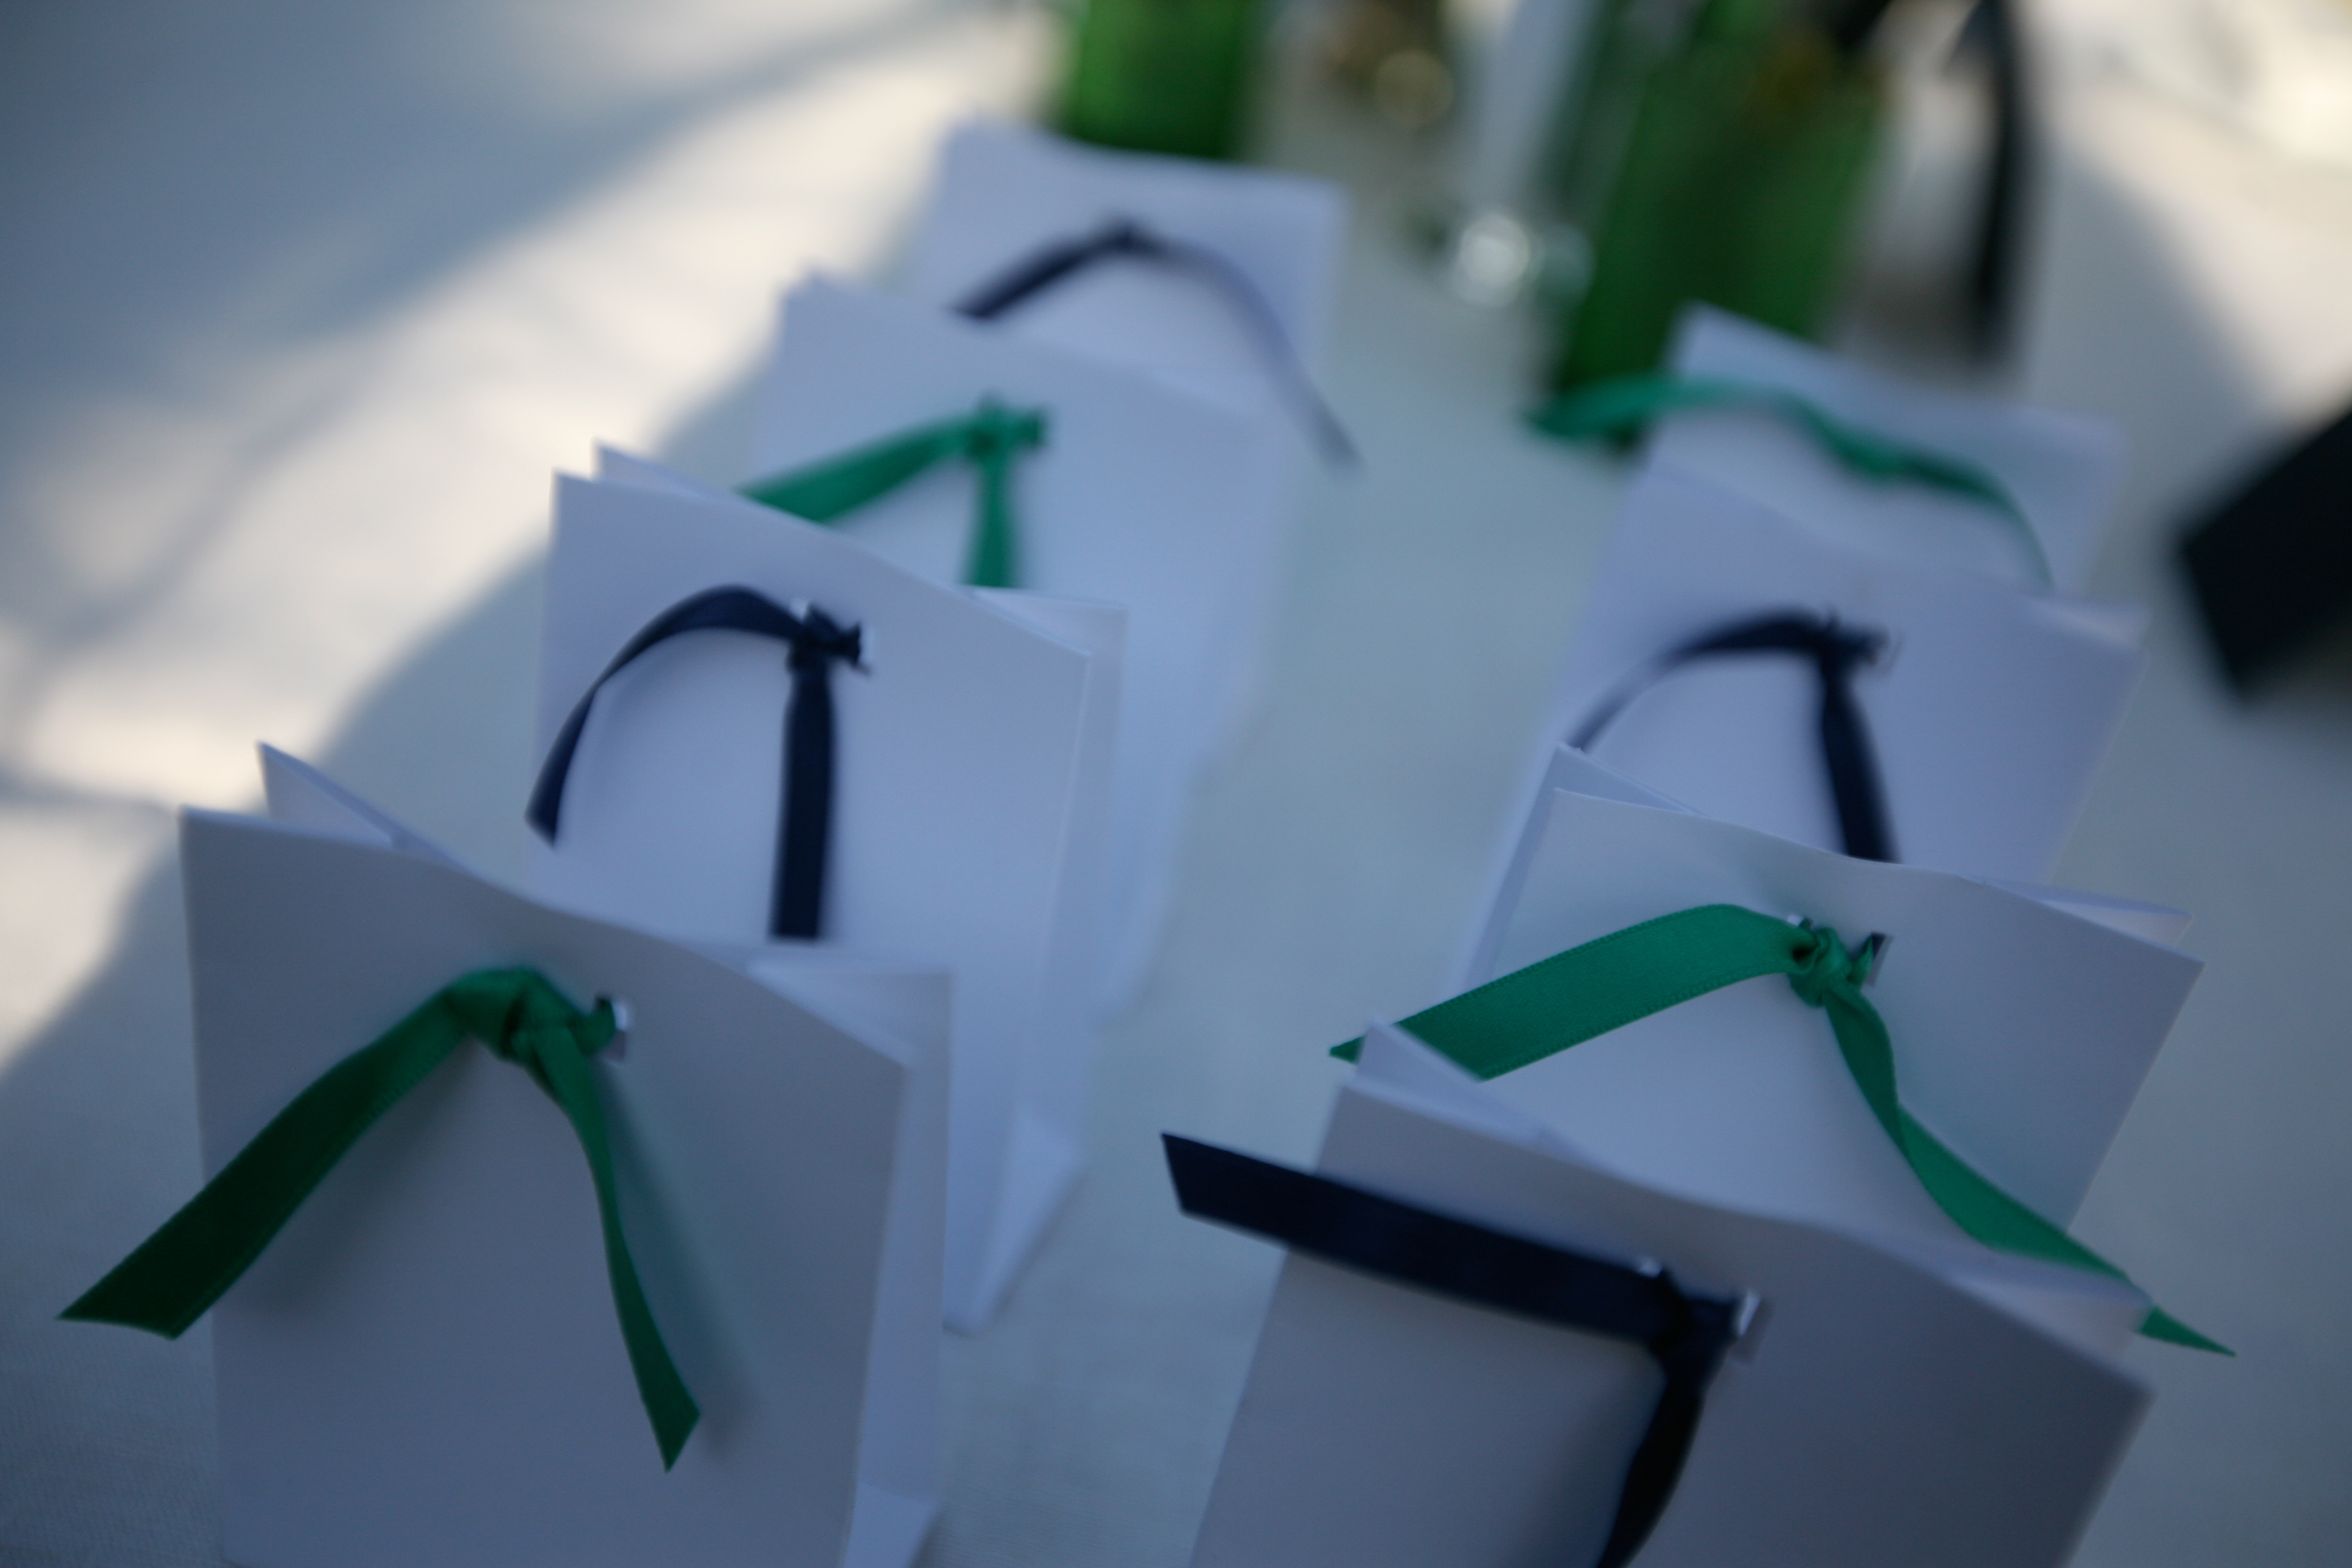 DIY, Favors & Gifts, blue, green, Favors, Downey street events